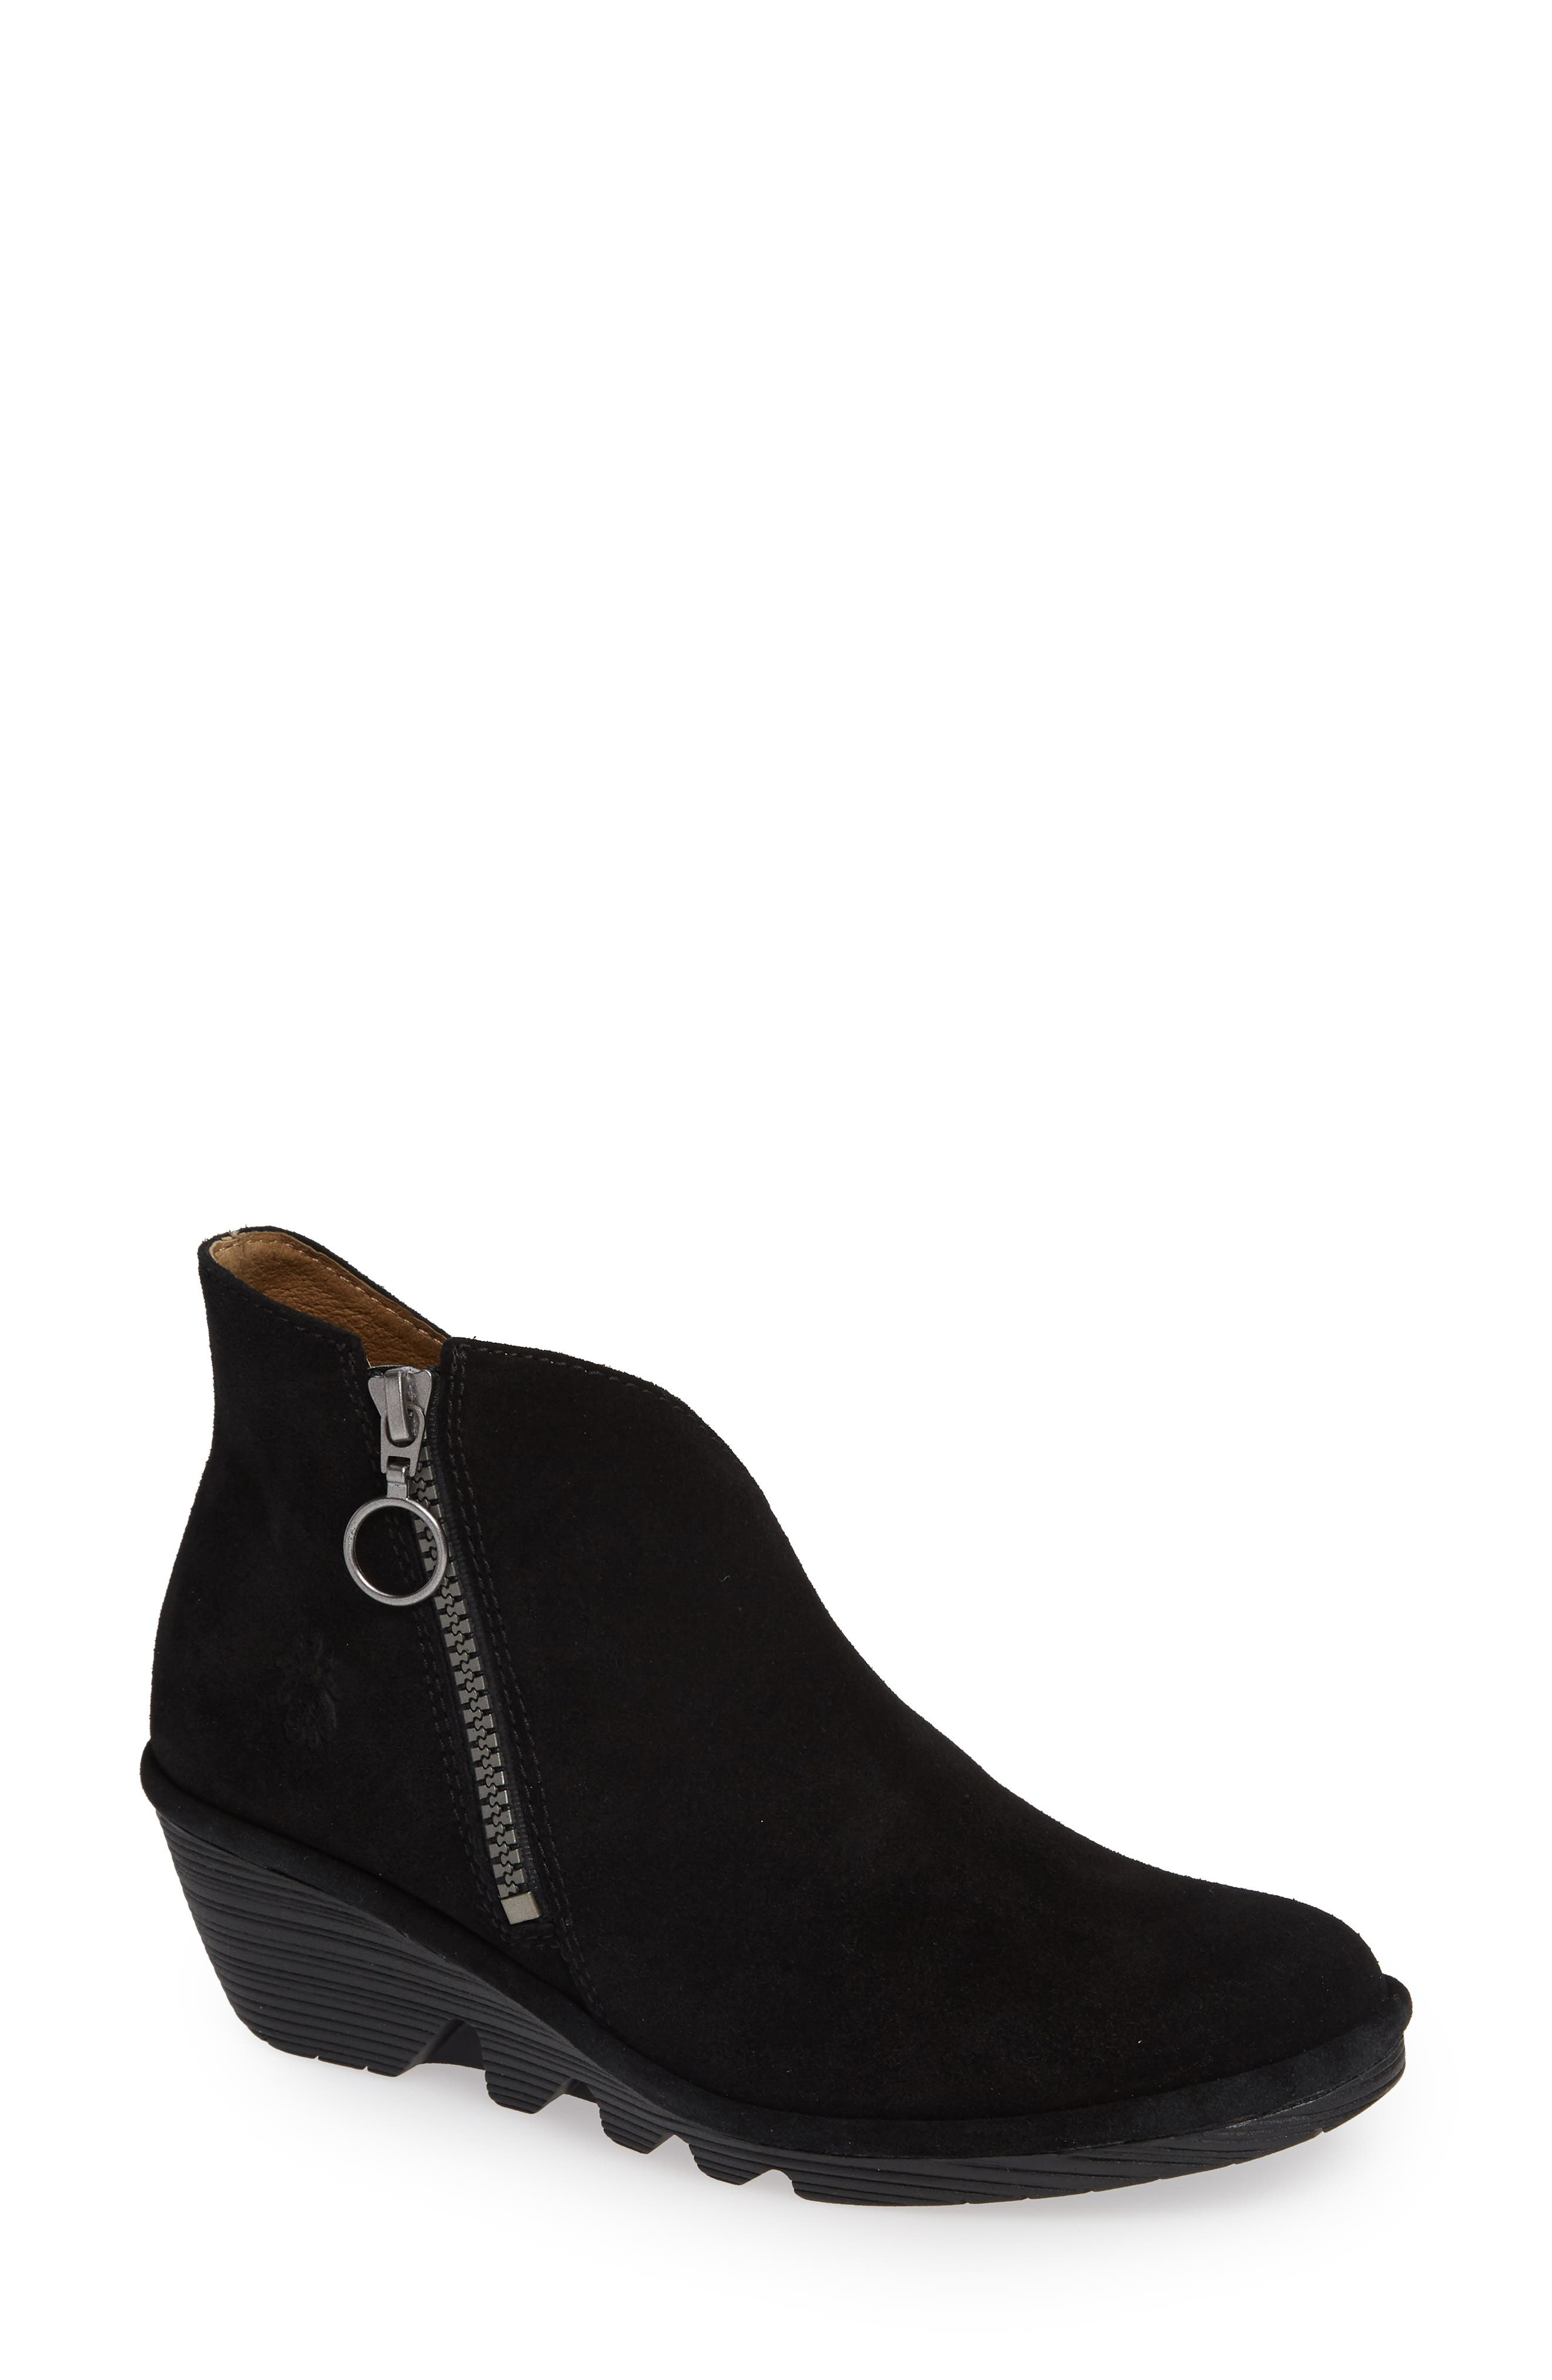 Poro Wedge Bootie,                             Main thumbnail 1, color,                             002